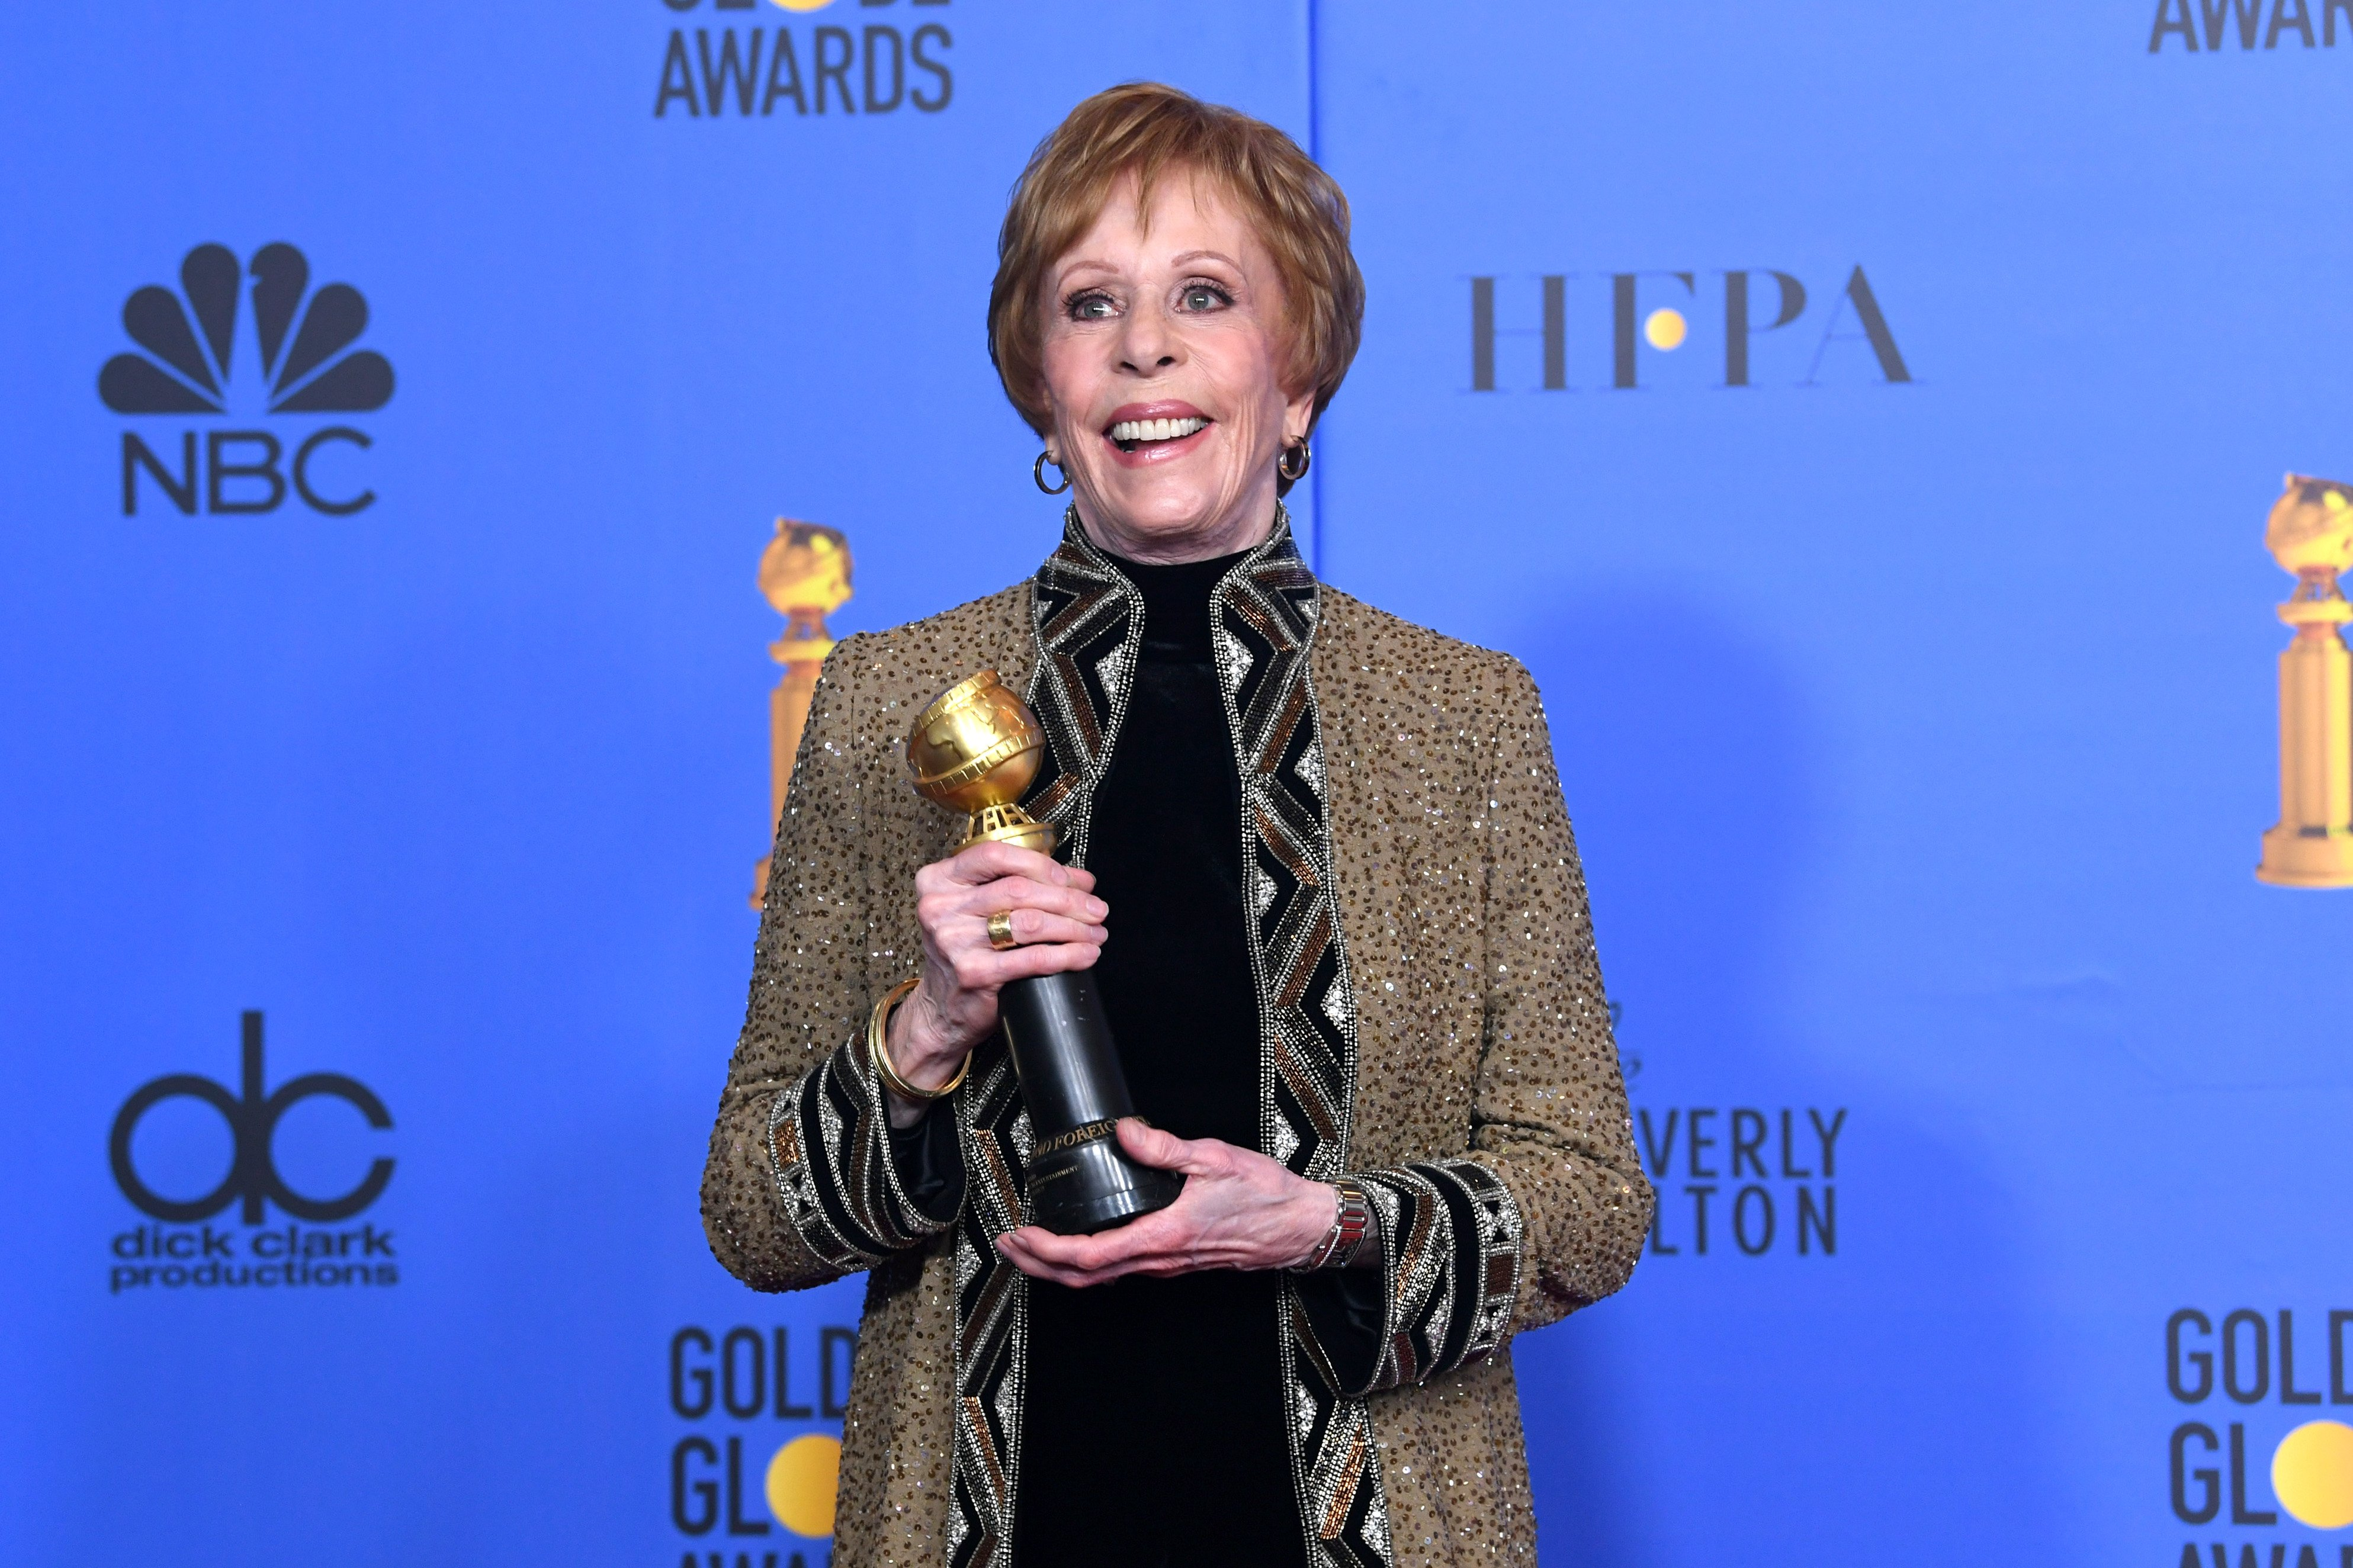 Carol Burnett at the 76th Annual Golden Globe Awards on January 6, 2019 | Photo: GettyImages